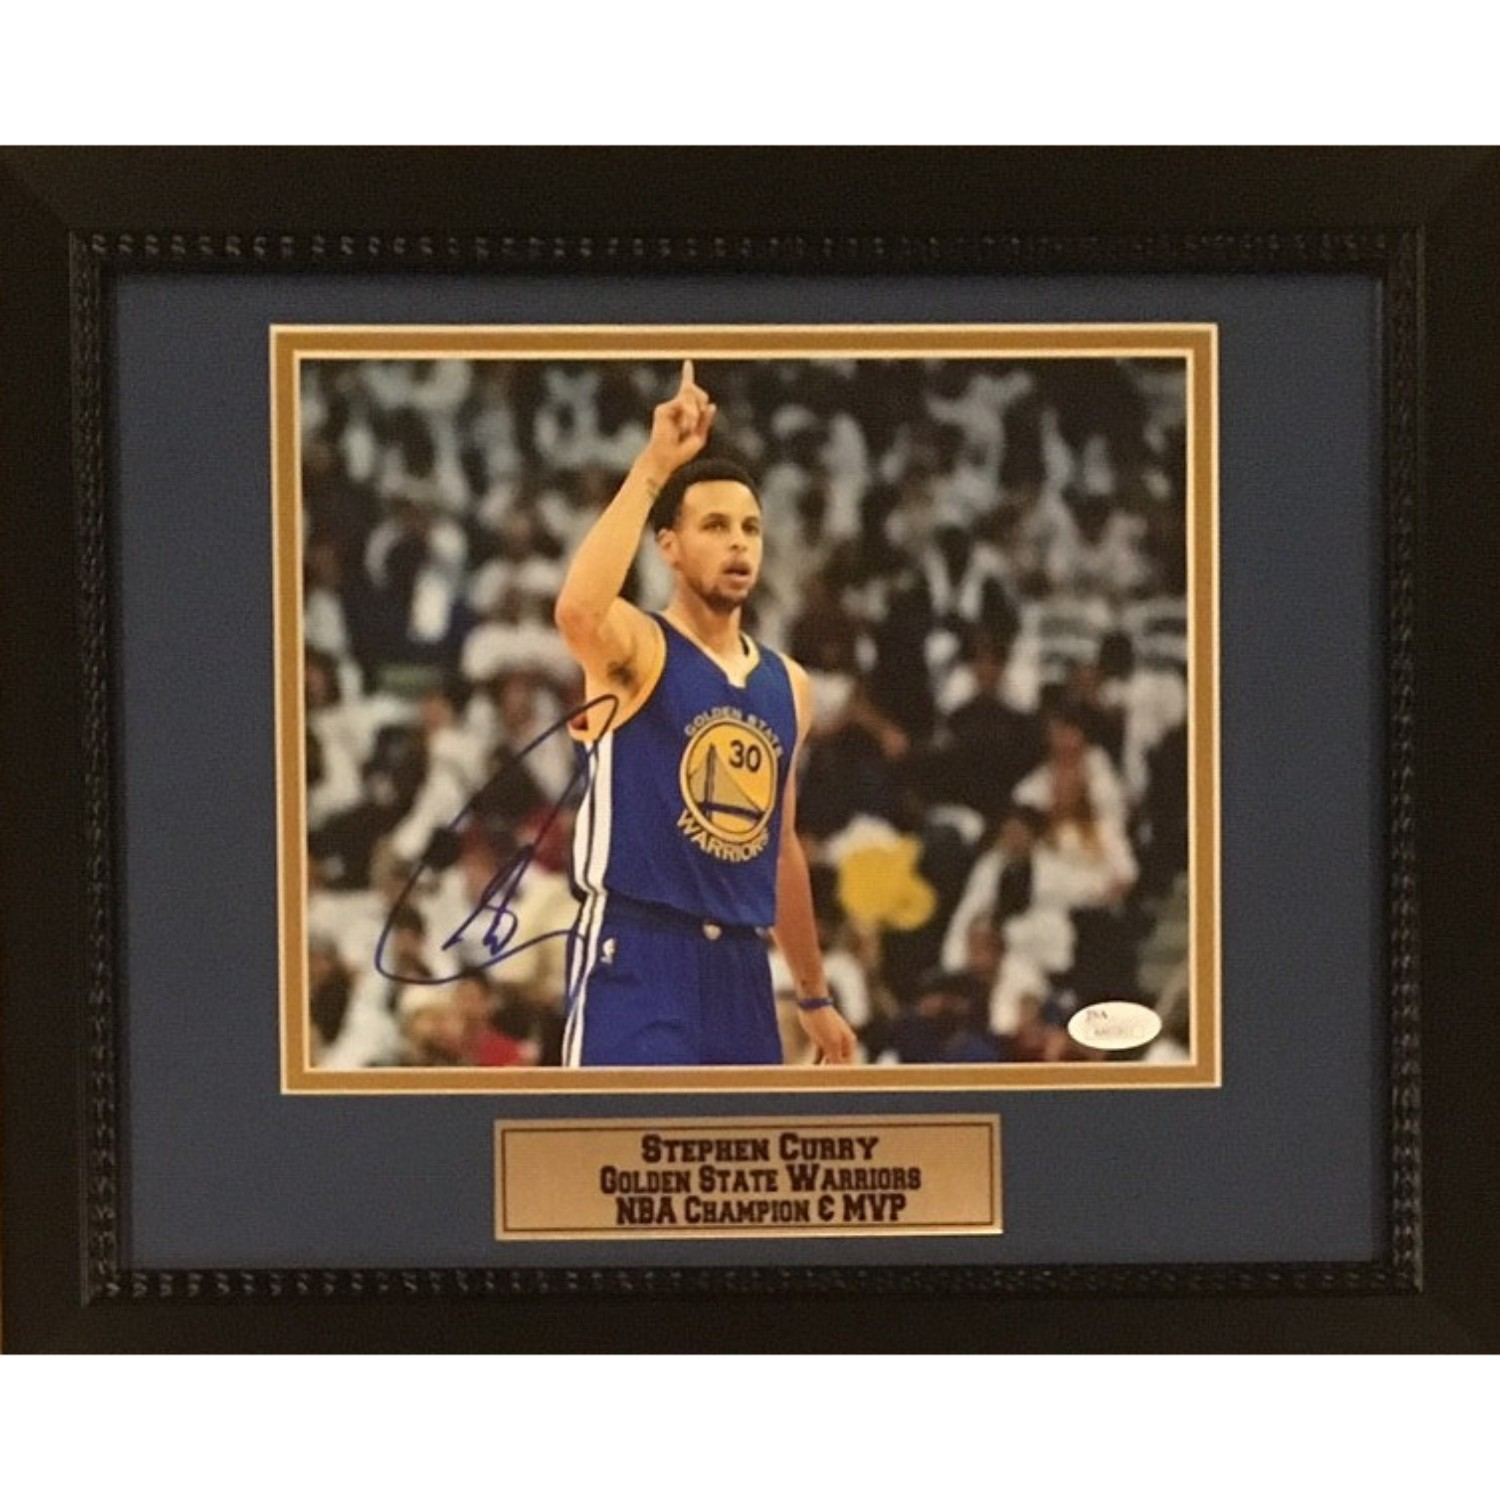 a92aefdd Sports Collectibles Luka Doncic Autographed Dallas Mavericks Signed 11x14  Basketball Framed Photo JSA COA 2 Powers Collectibles